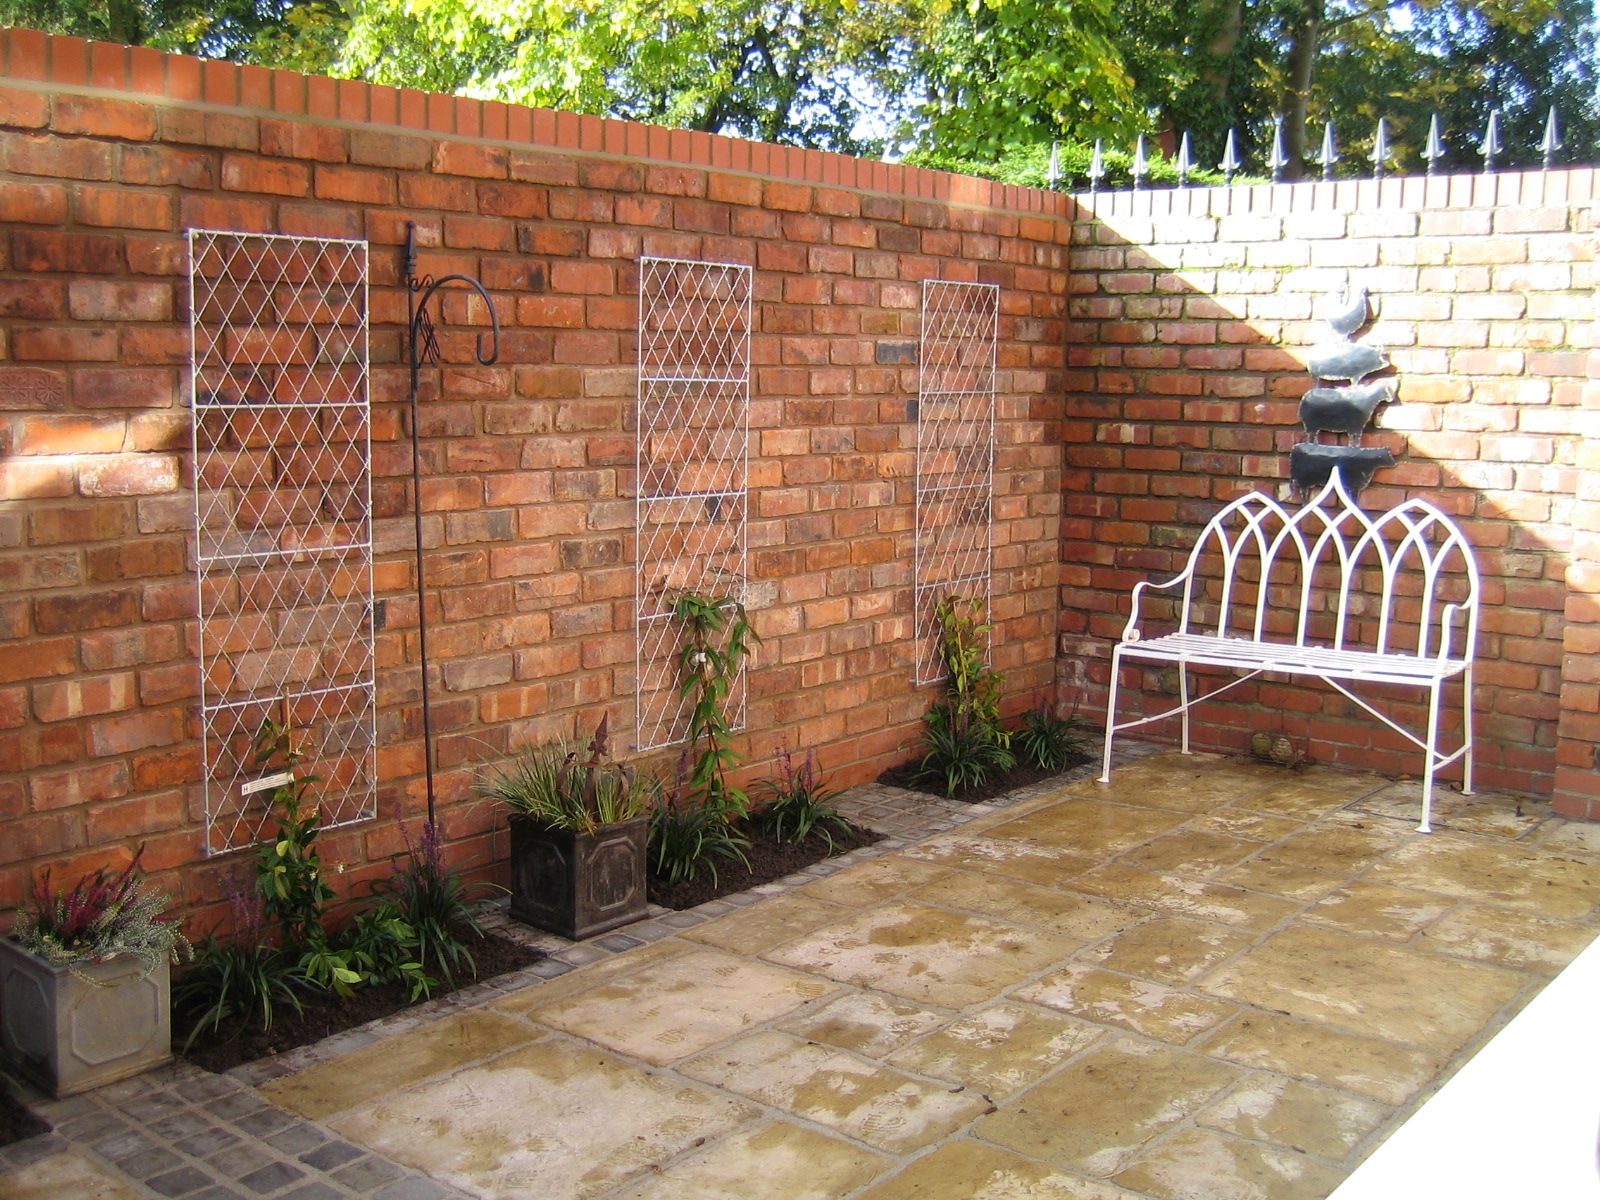 Reclaimed brick walls in a small courtyard garden from a for Designs for brick garden walls